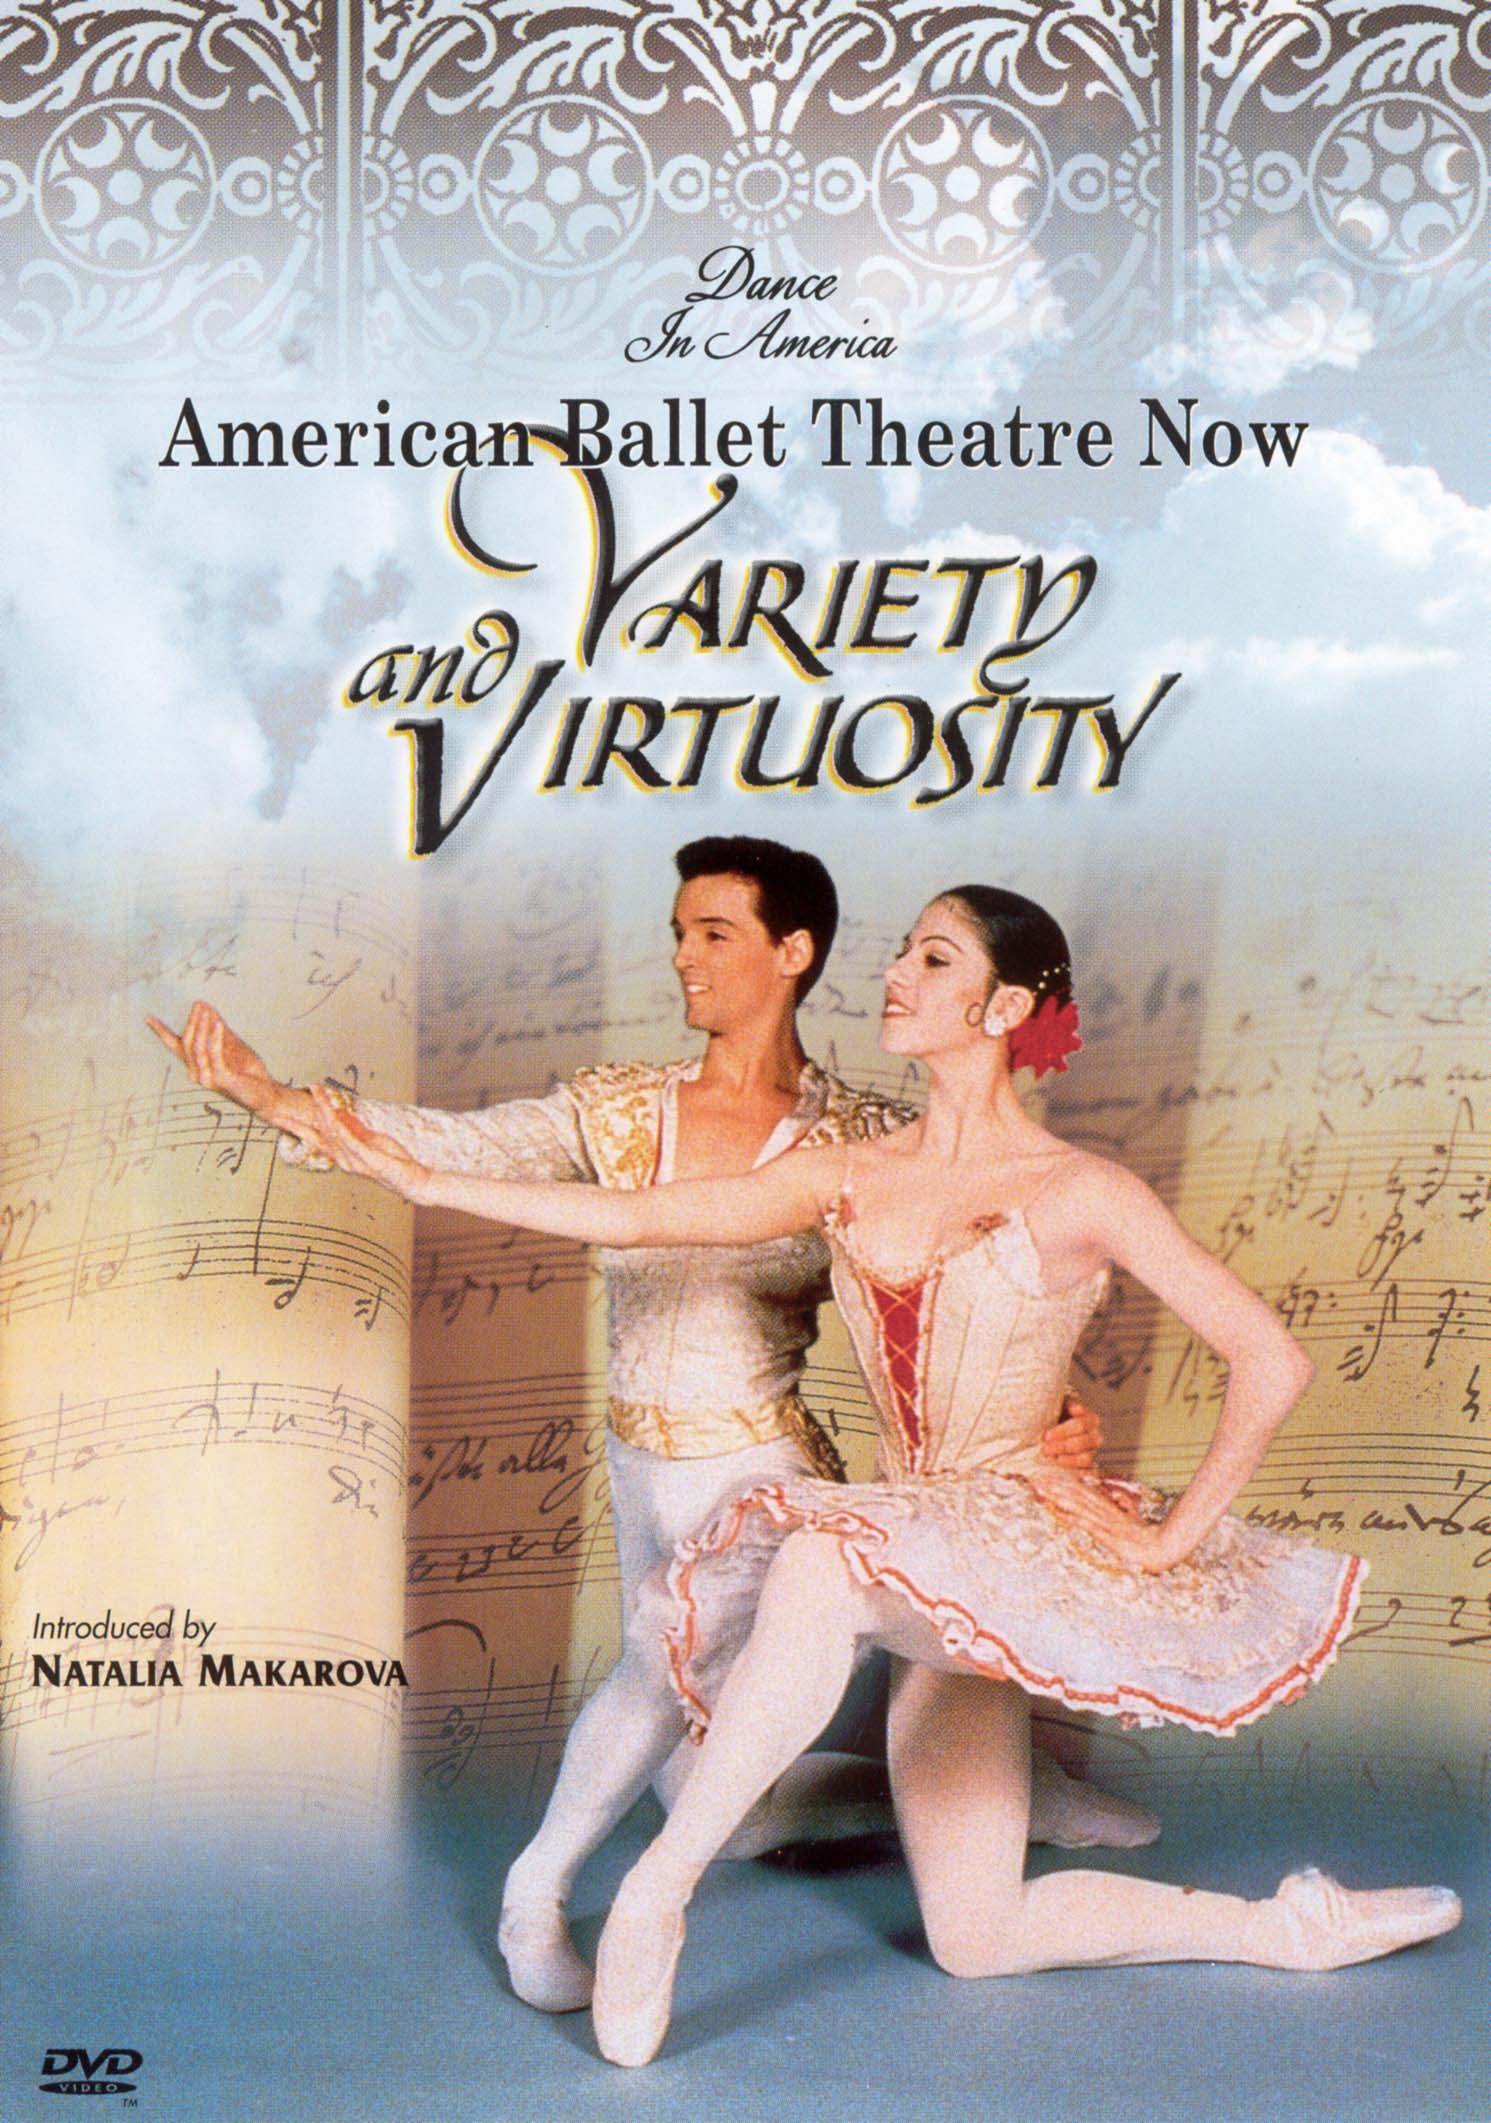 American Ballet Theatre Now: Variety and Virtuosity